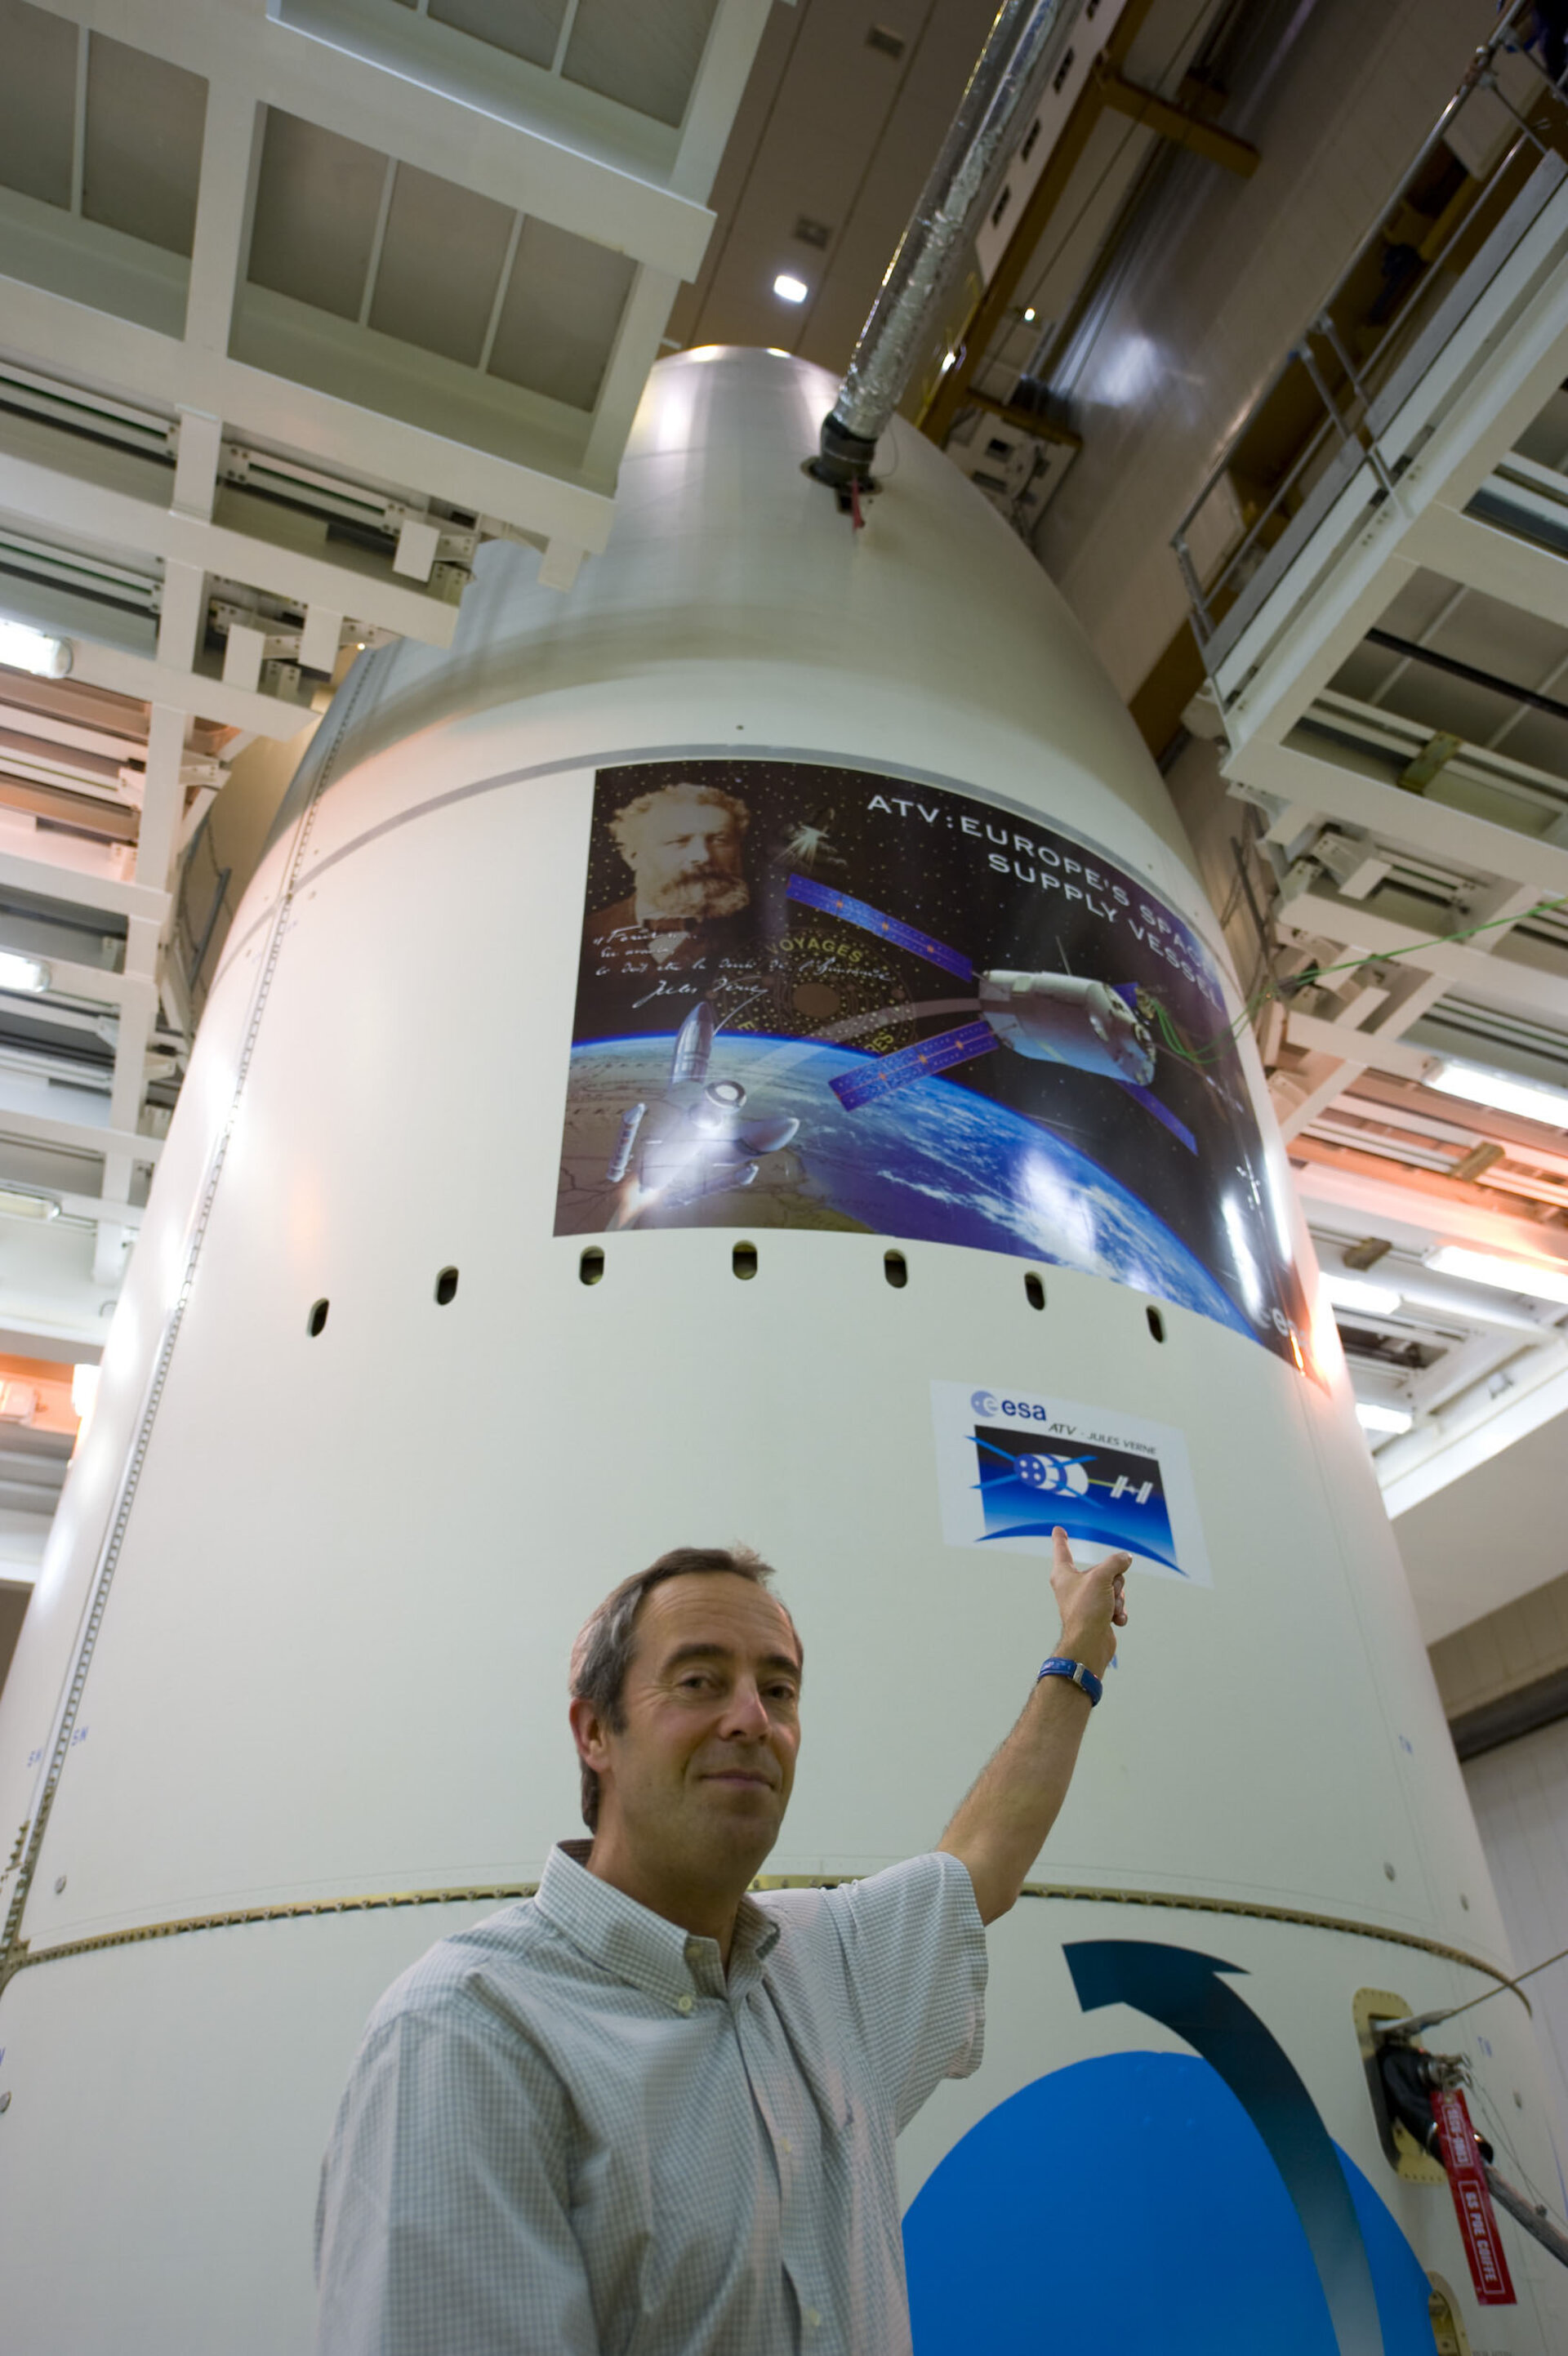 Jean-François Clervoy points to stickers on the Ariane 5 ES-ATV launcher fairing